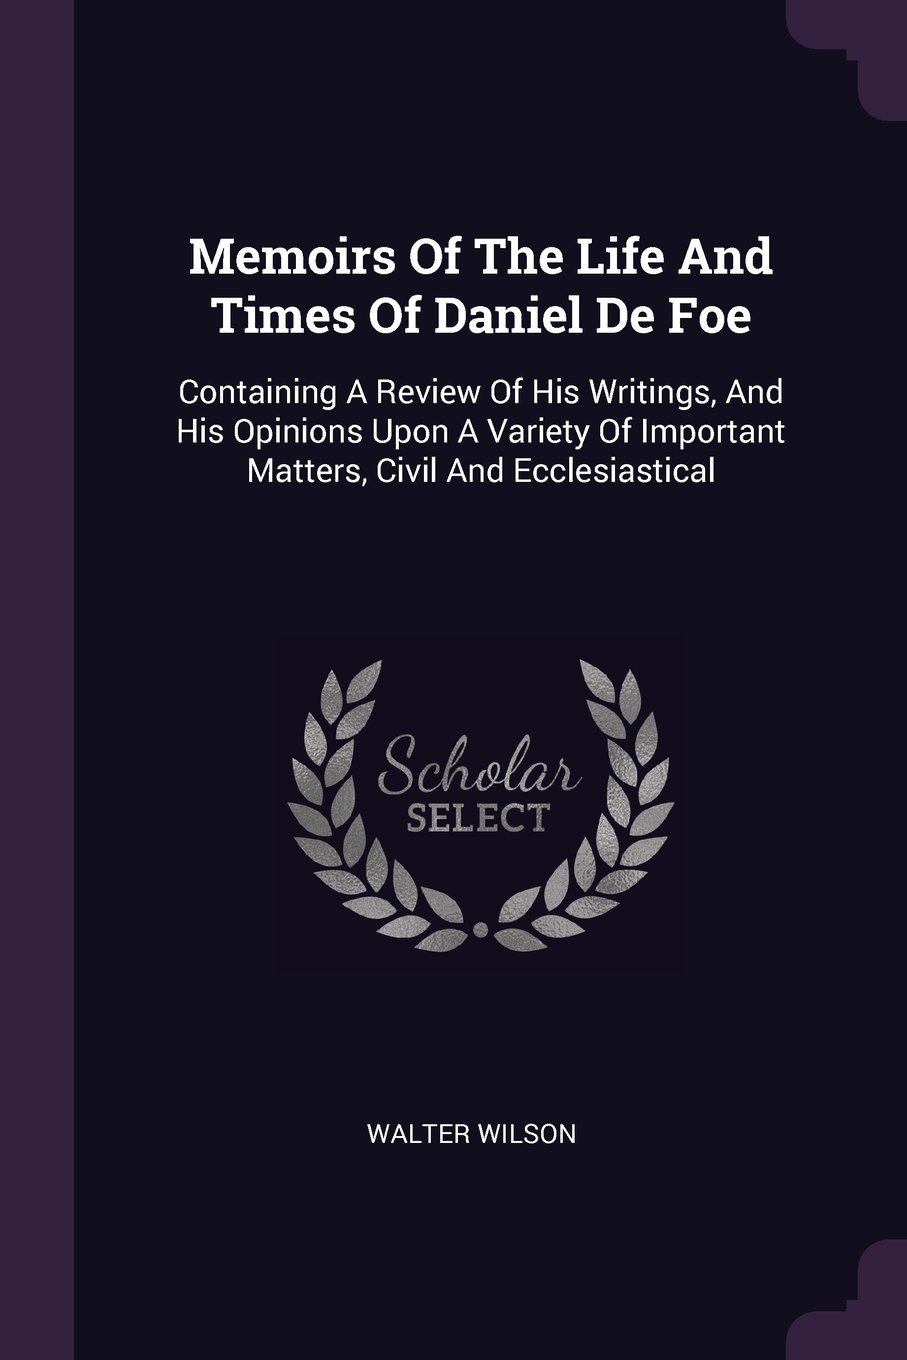 Download Memoirs Of The Life And Times Of Daniel De Foe: Containing A Review Of His Writings, And His Opinions Upon A Variety Of Important Matters, Civil And Ecclesiastical pdf epub